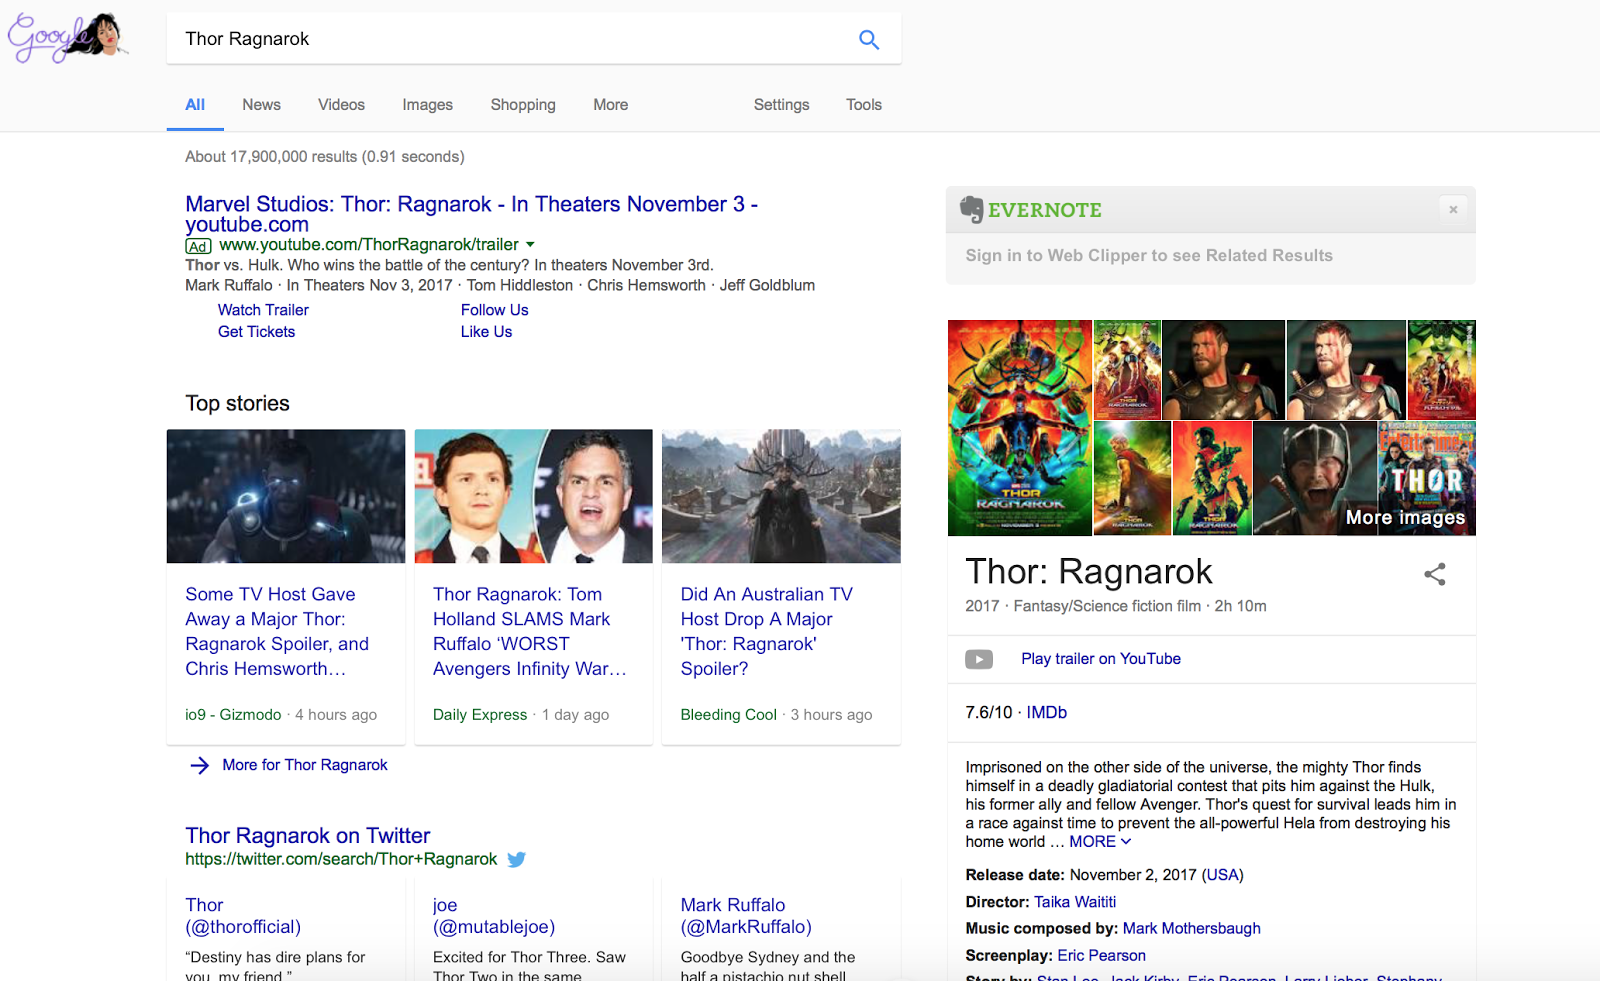 Notice how the Marvel link is actually an ad?